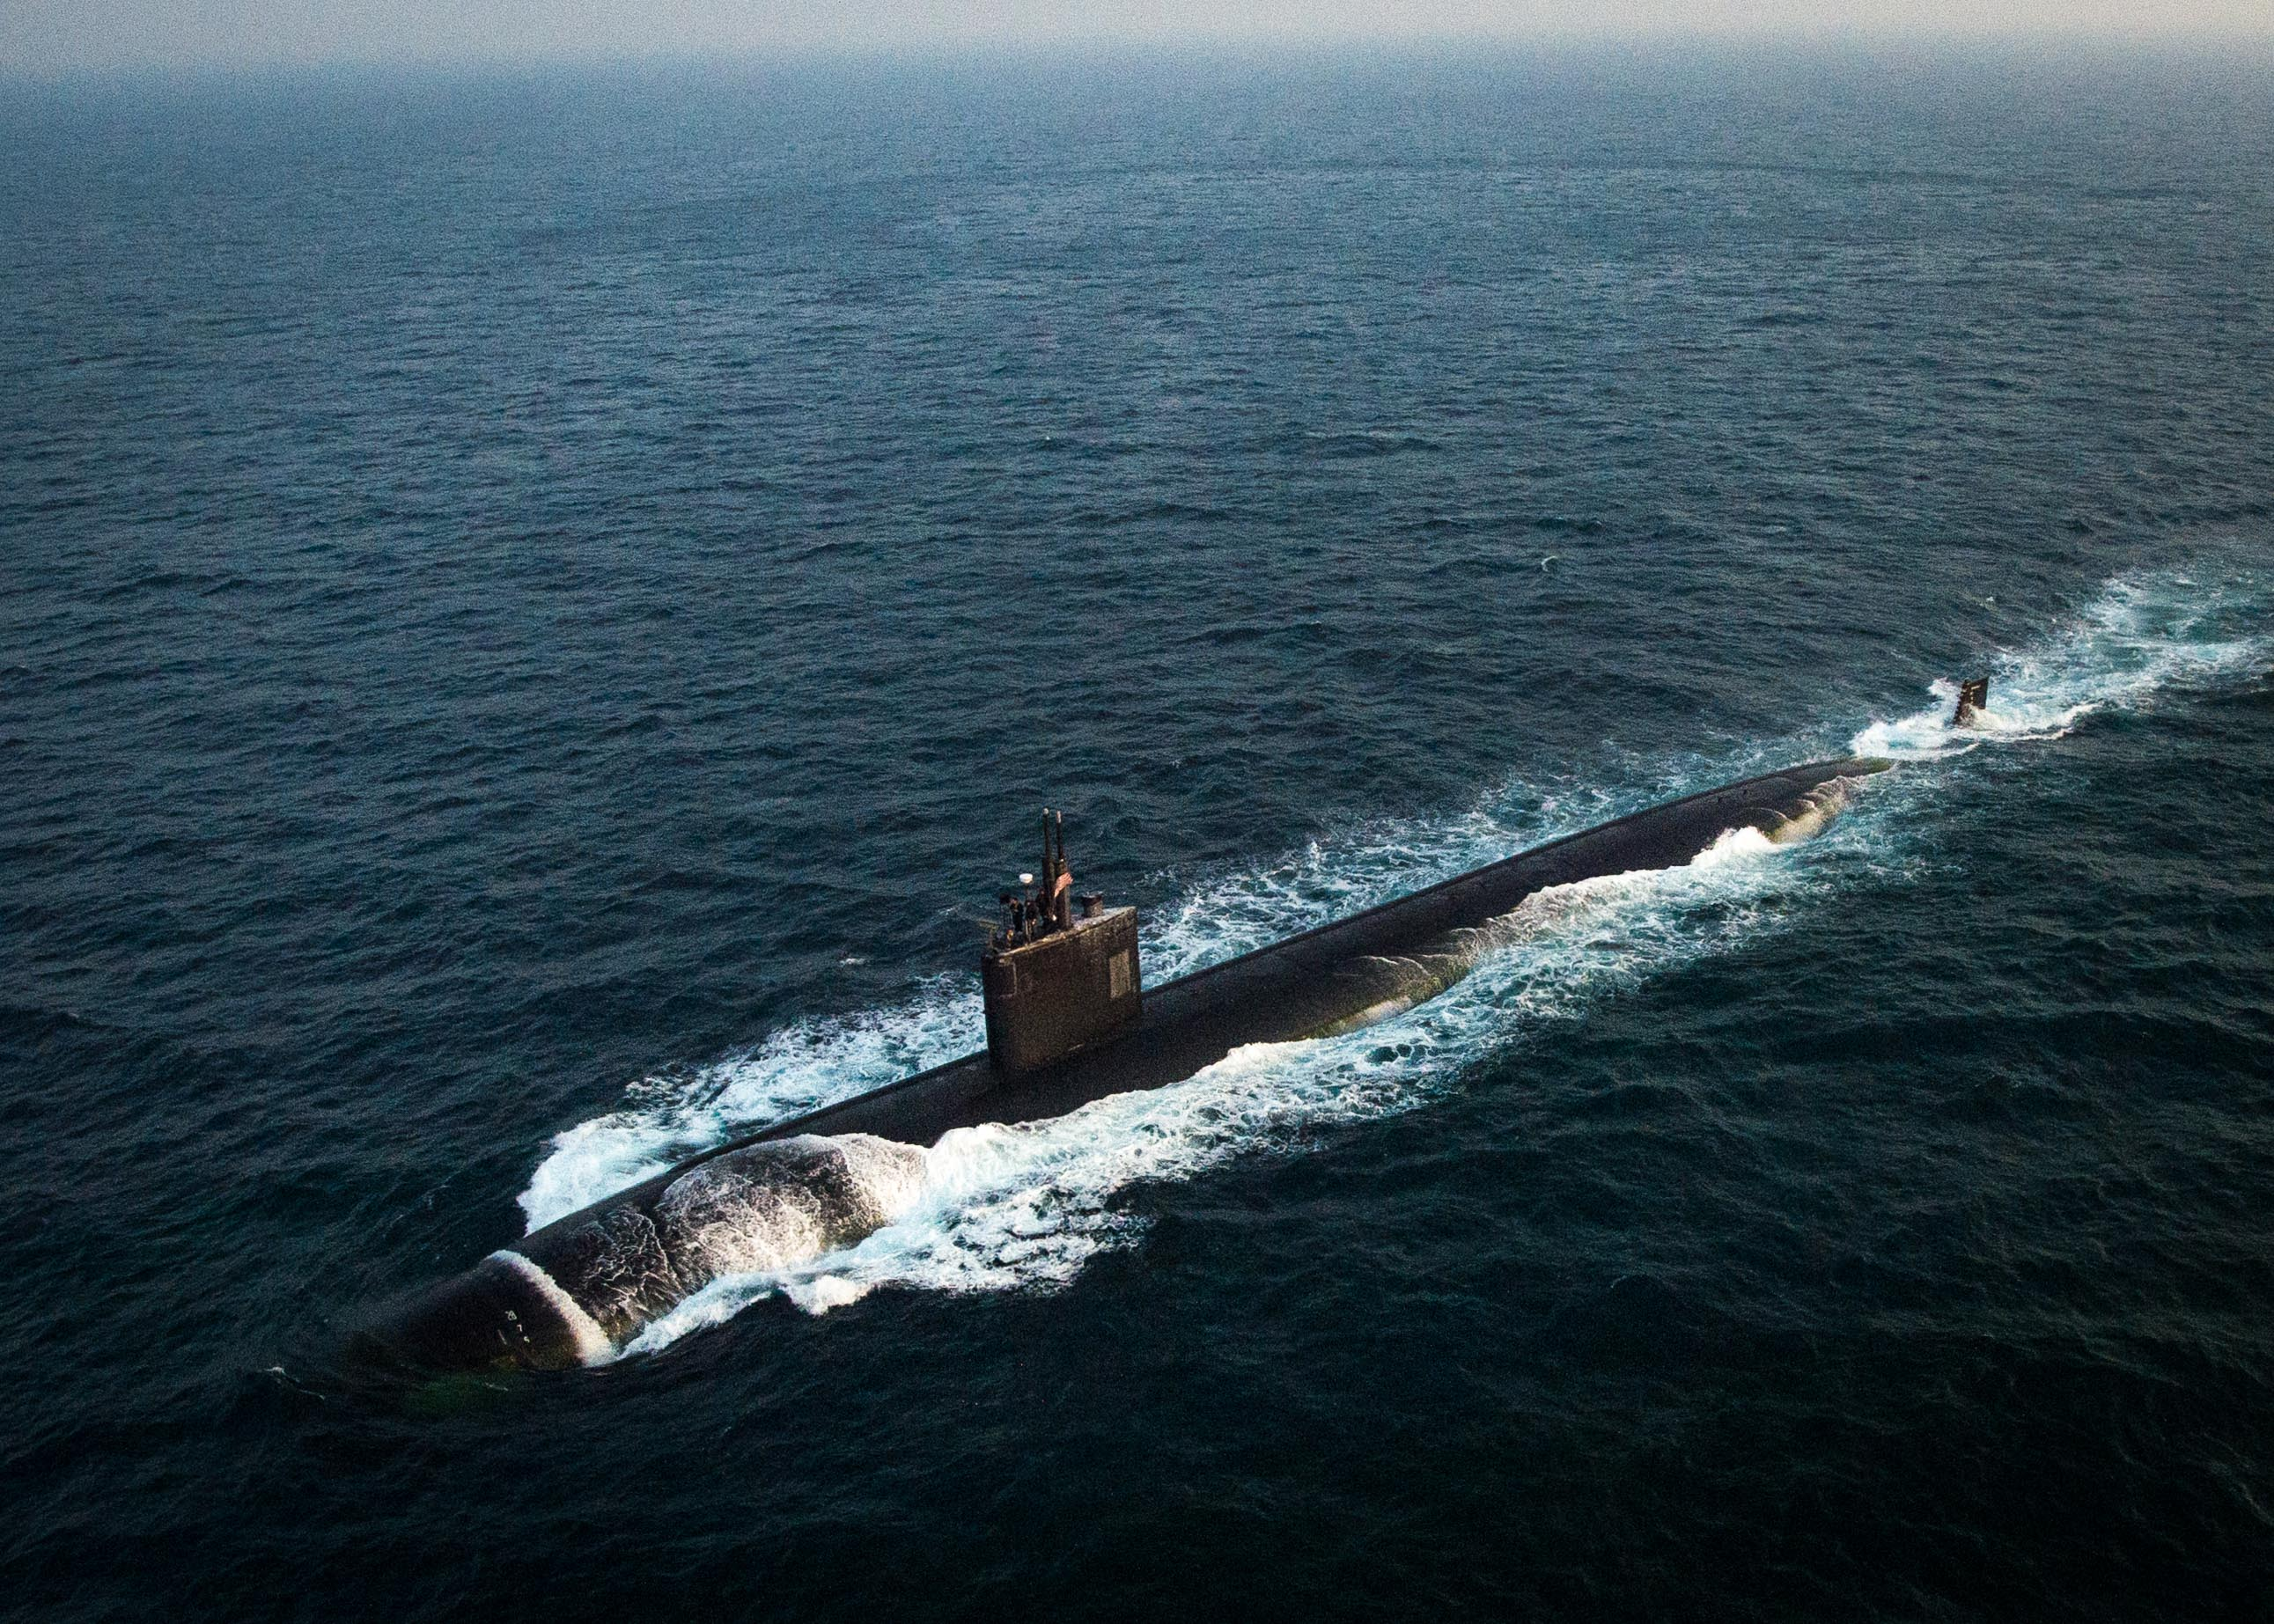 Los Angeles-class fast attack submarine USS Toledo (SSN-769) transits through the Persian Gulf. on Jan. 21, 2016. US Navy Photo